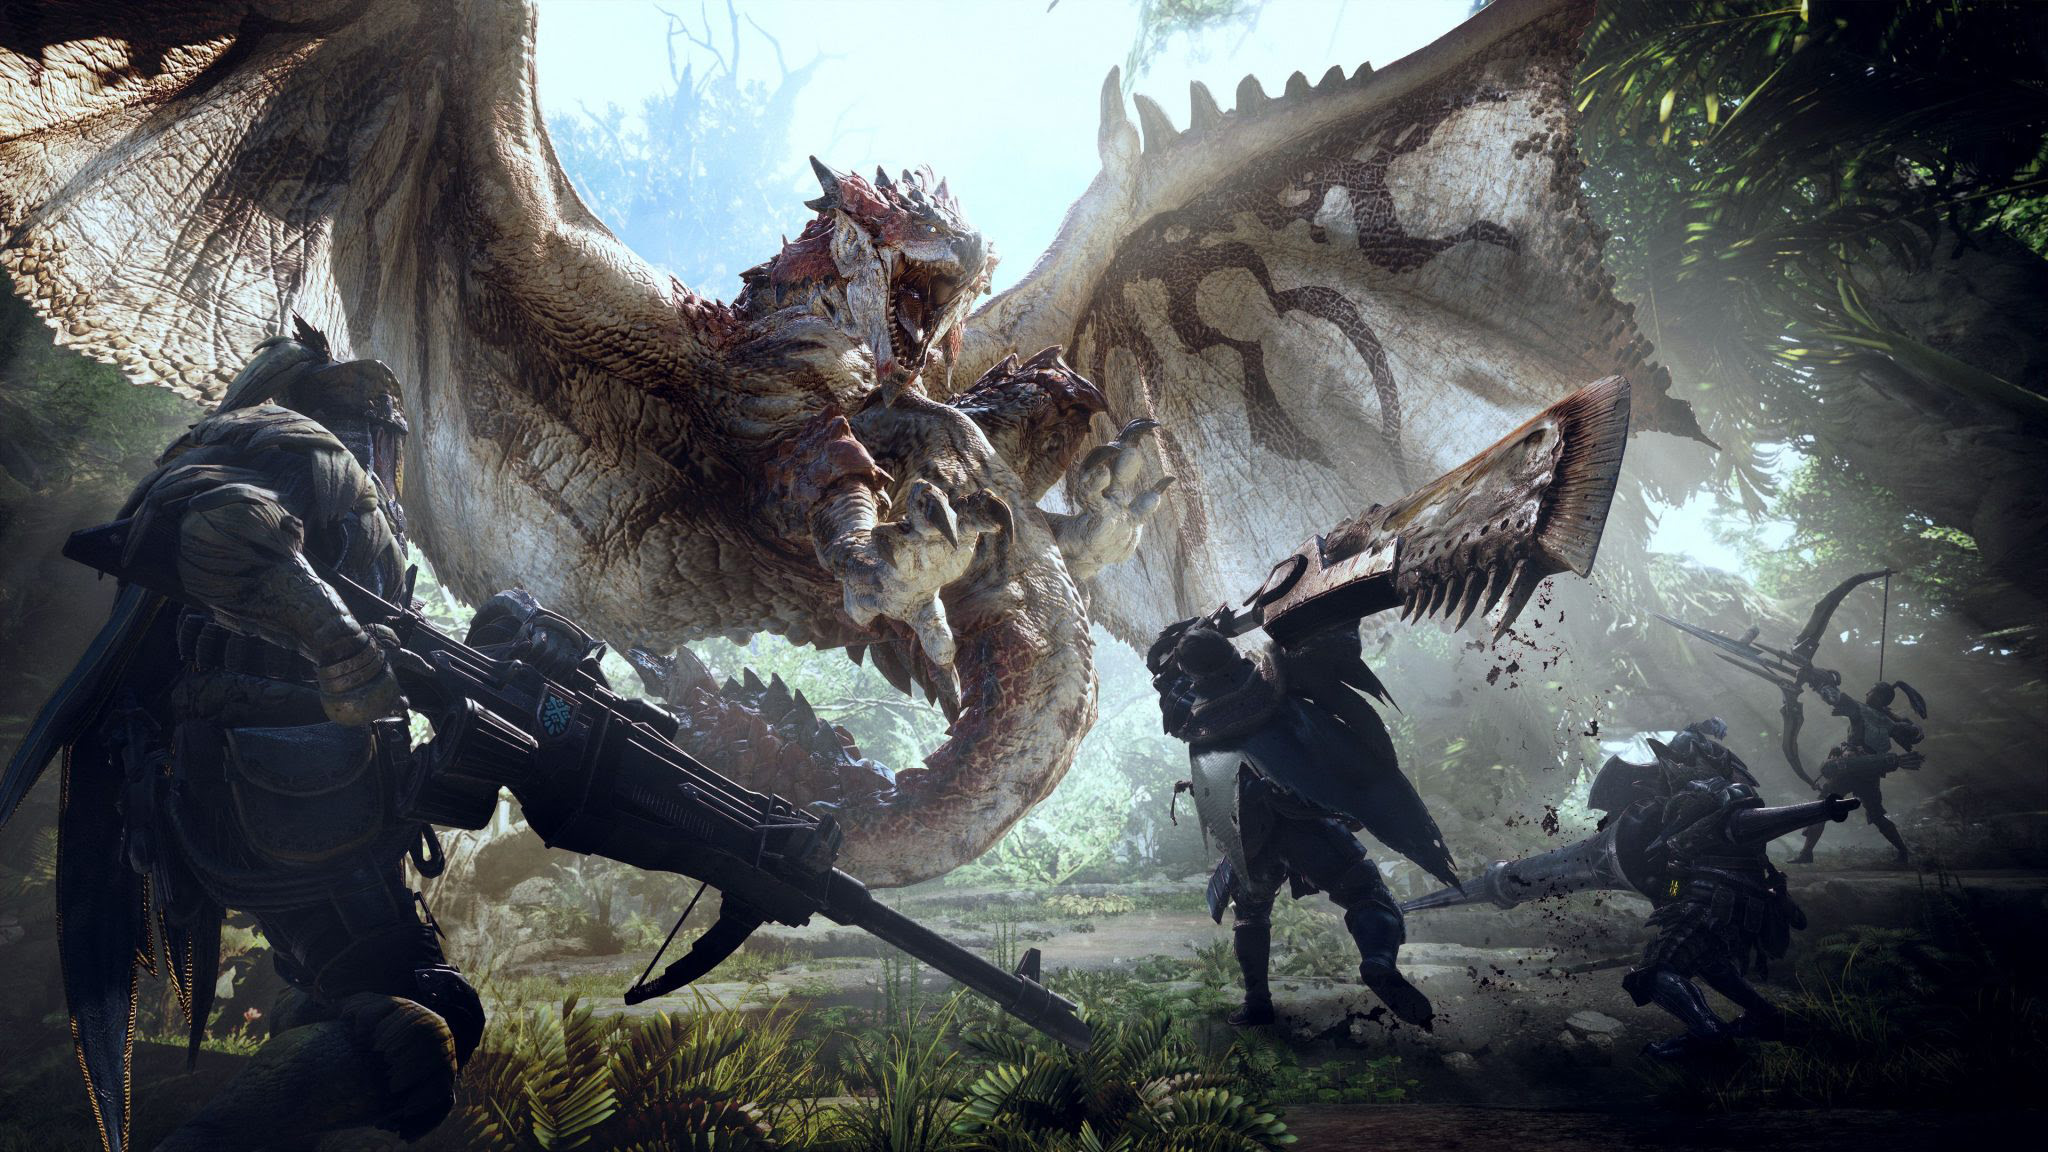 Contest open to design a weapon for Monster Hunter: World screenshot